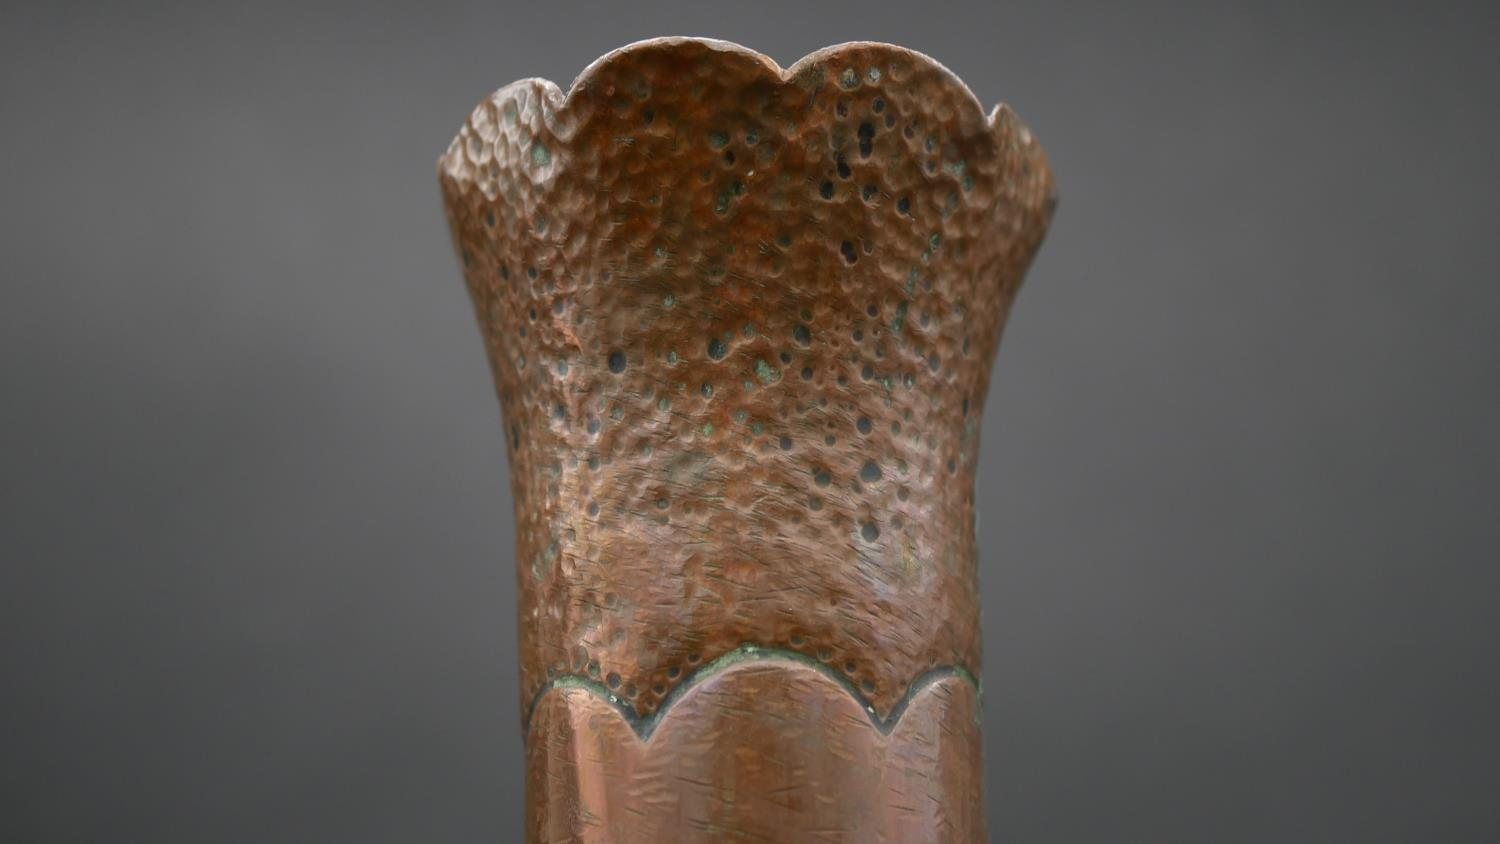 A WW1 Trench Art vase of hammered and fluted Art Nouveau form. H.50cm - Image 3 of 4